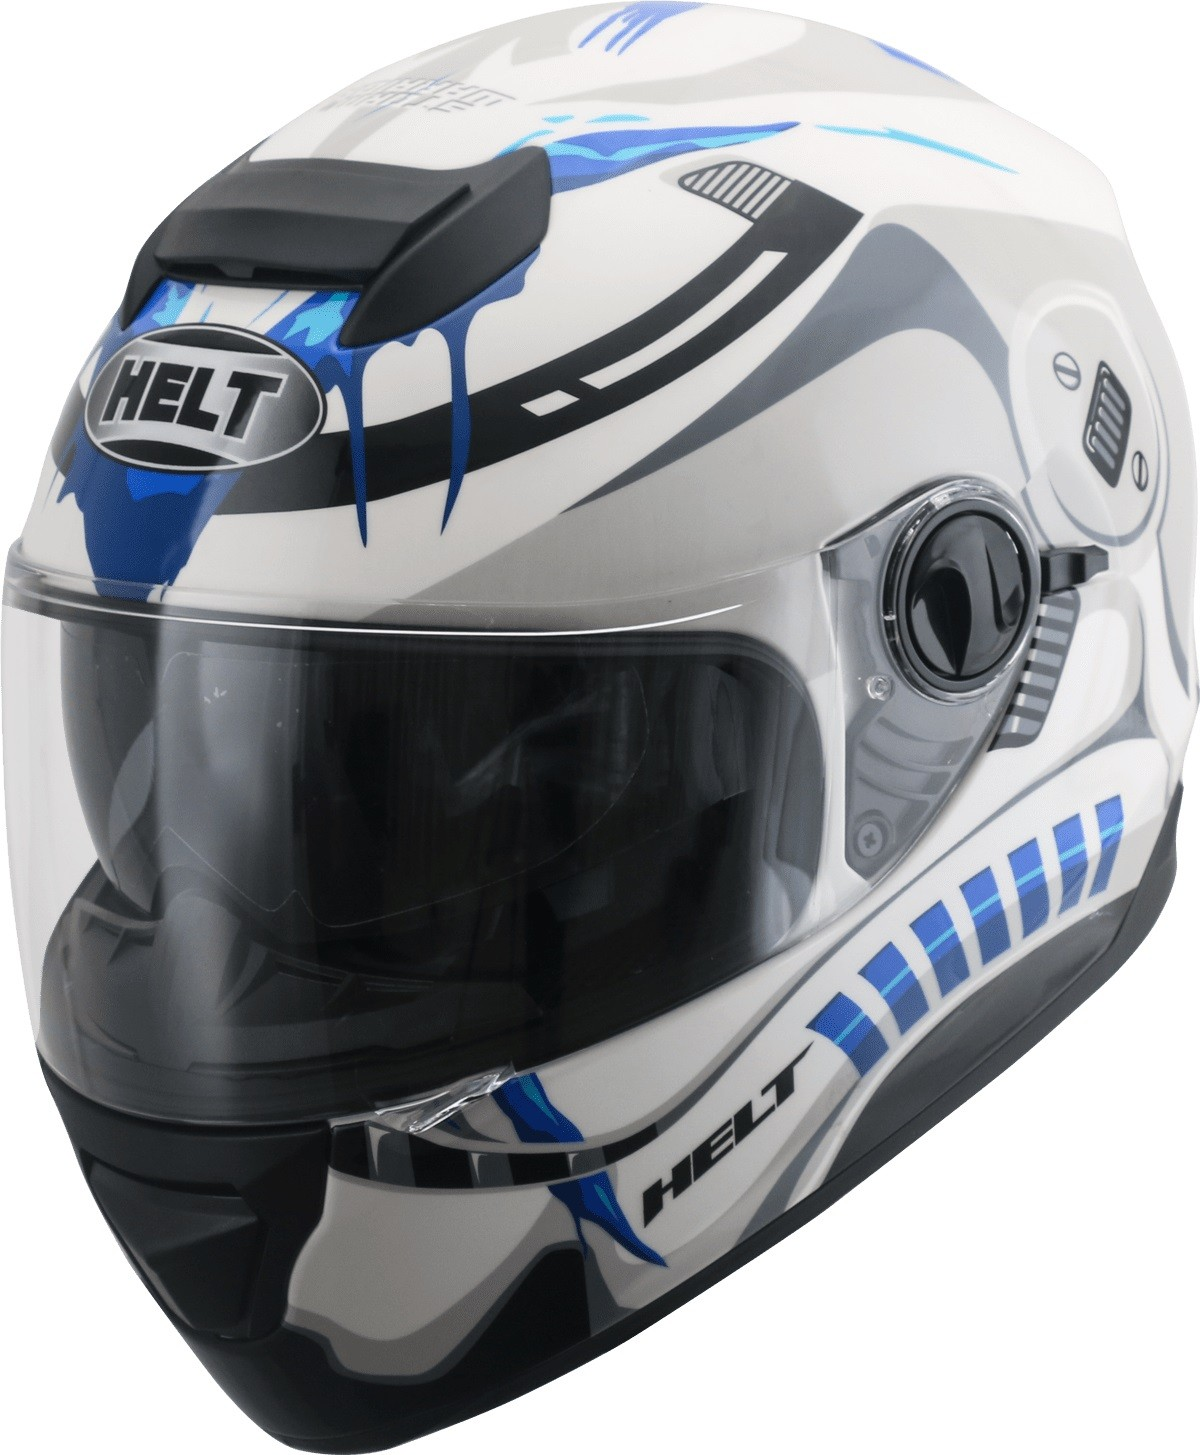 Capacete Helt 965 New Race Glass Storm C/ Óculos Interno Fumê